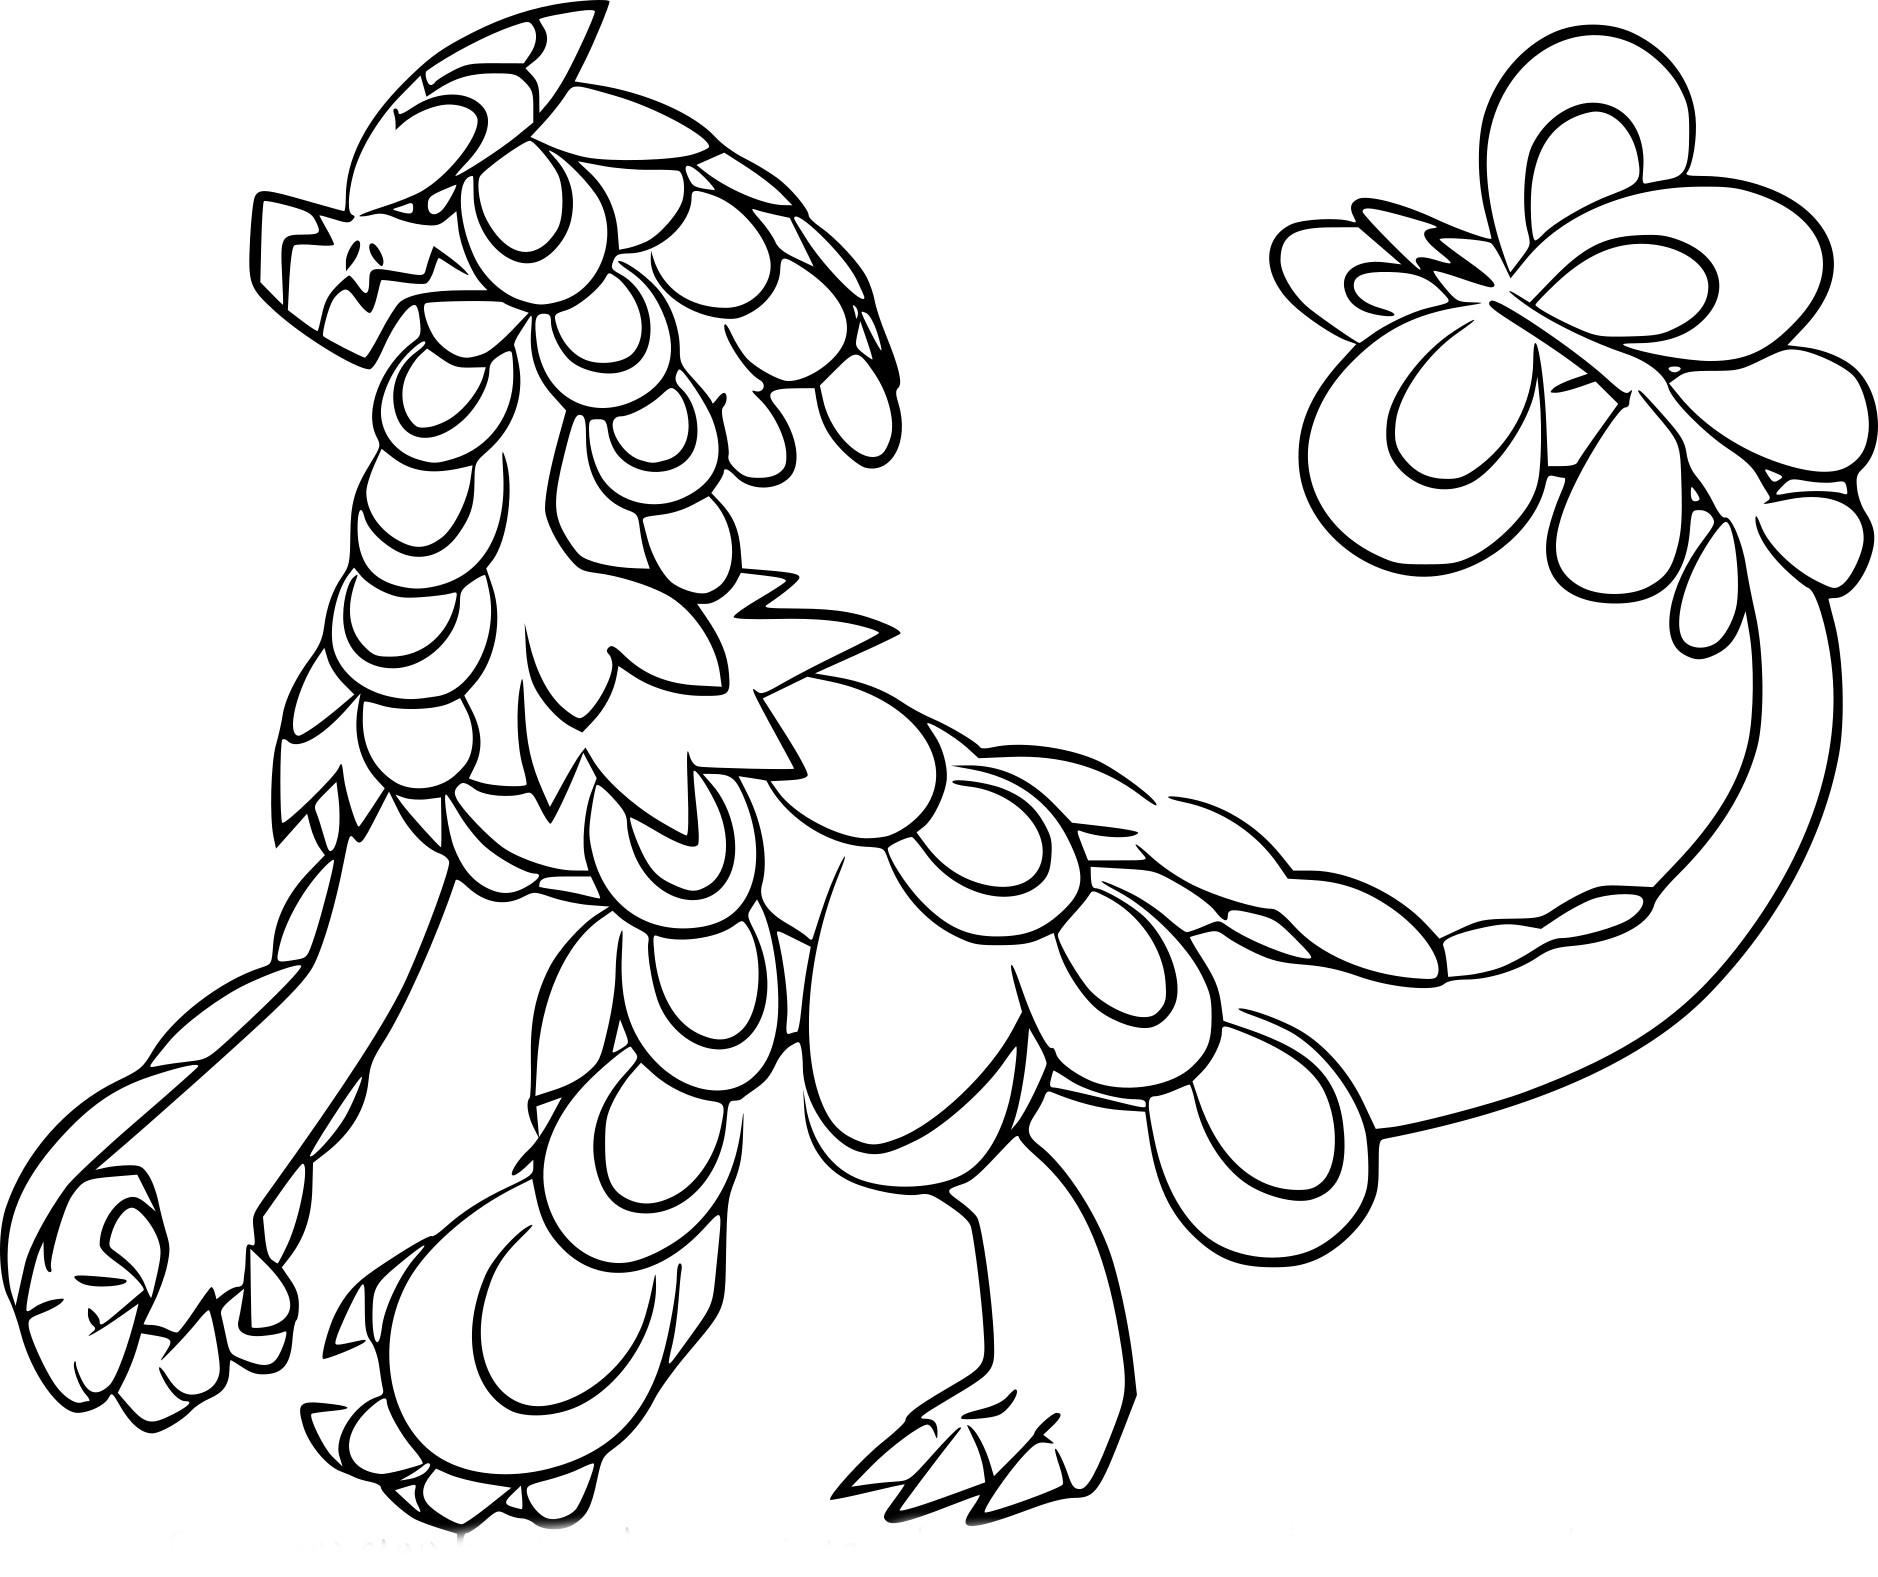 Coloriage ka ser pokemon imprimer - Coloriages a colorier ...